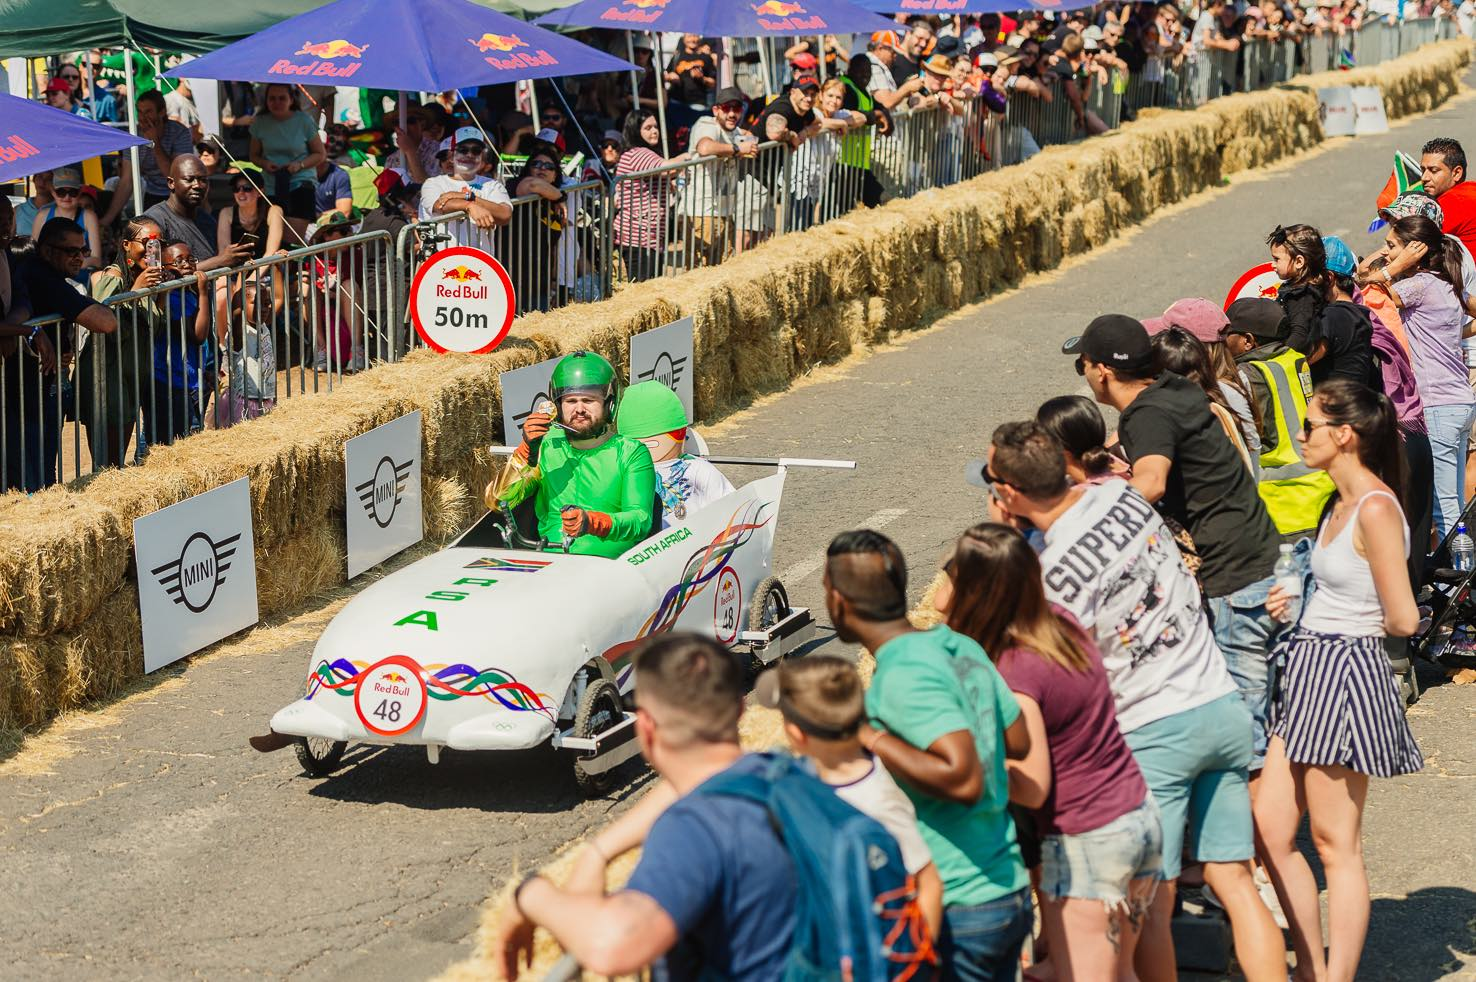 Team SA Bobsled winning the Red Bull Box Cart Race 2018